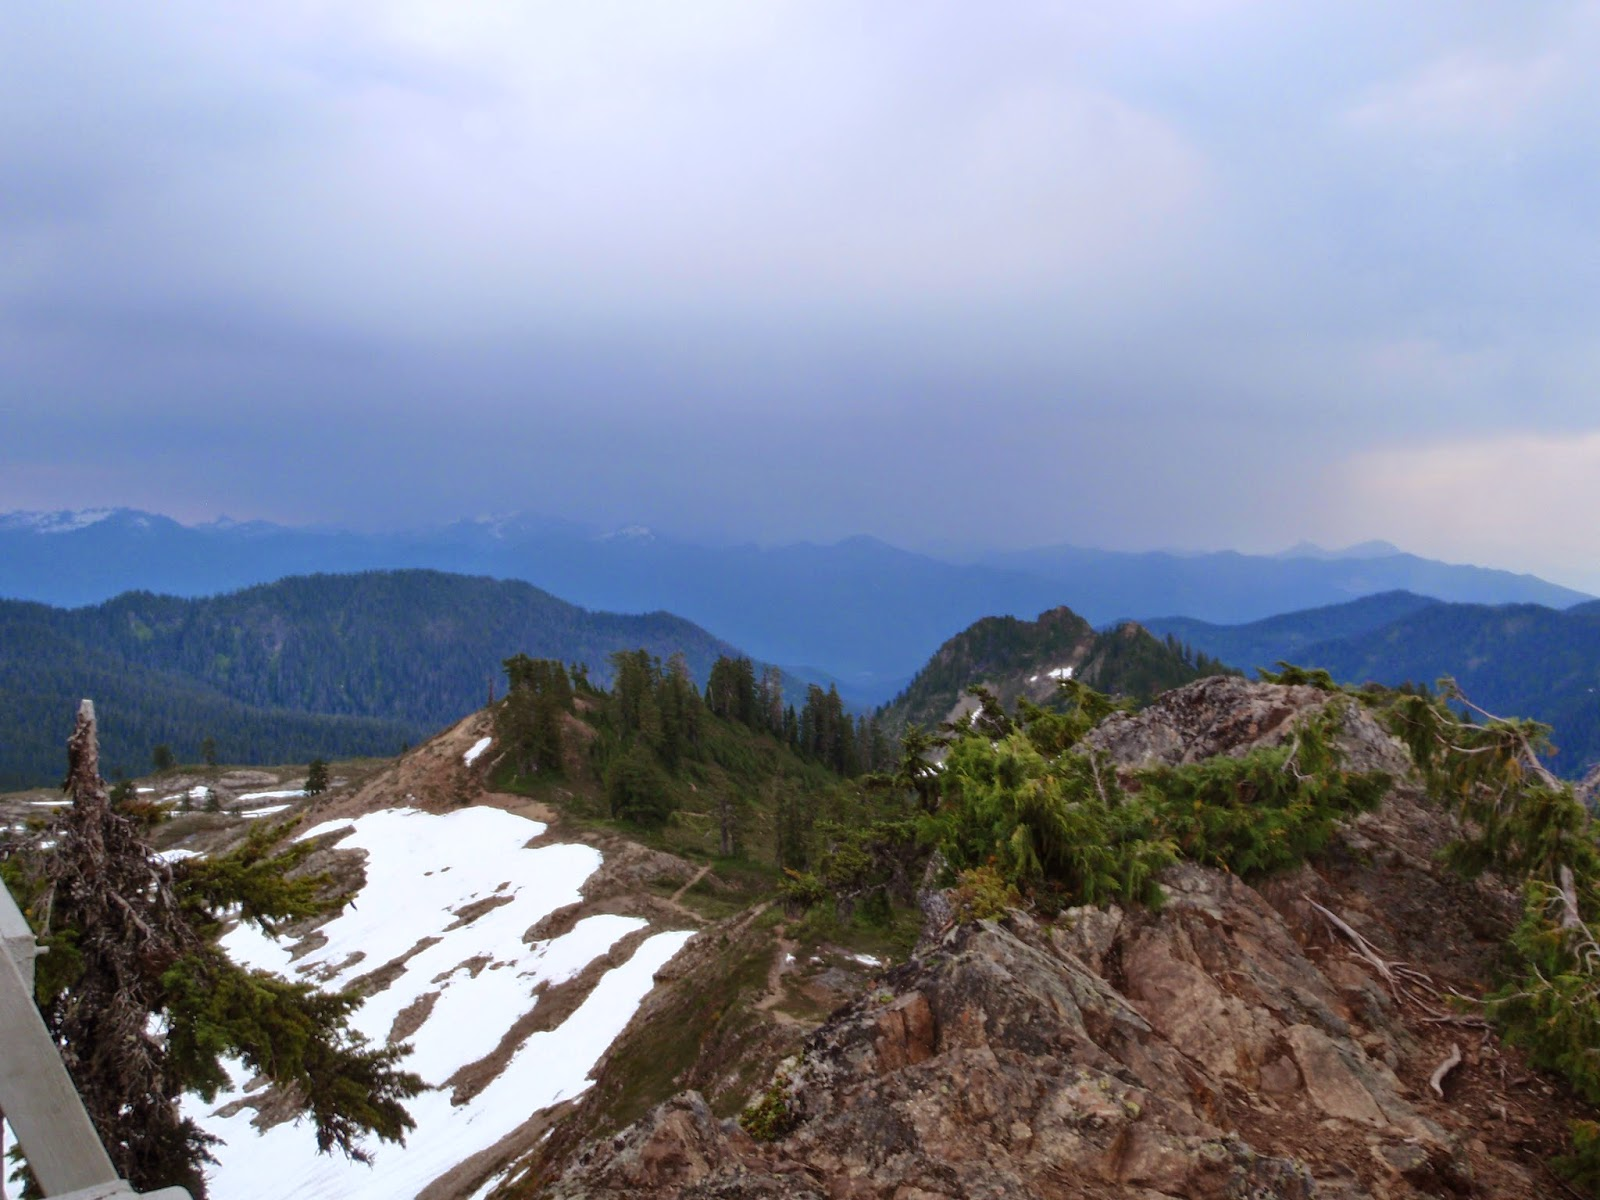 View from Park Butte fire lookout over toward the storms @ Mt Baker Wilderness Area